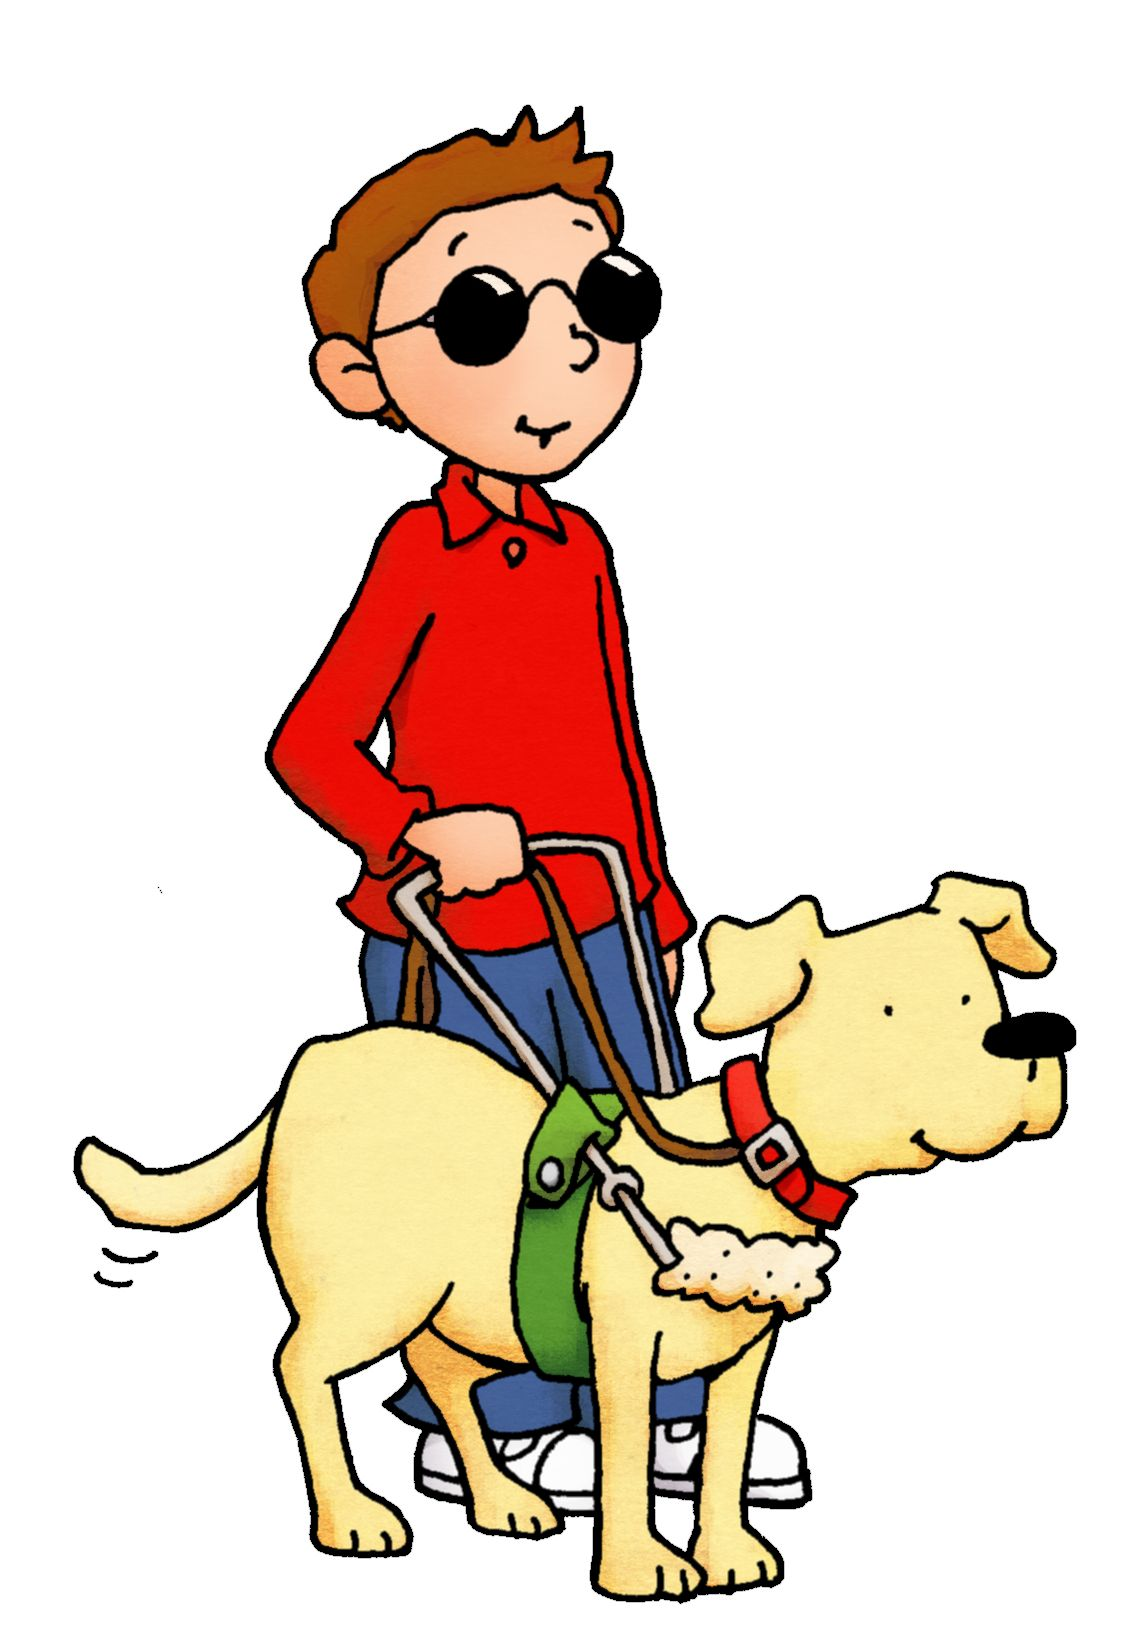 Seeing Eye Dog Clip Art Want To Know More Click On The Image